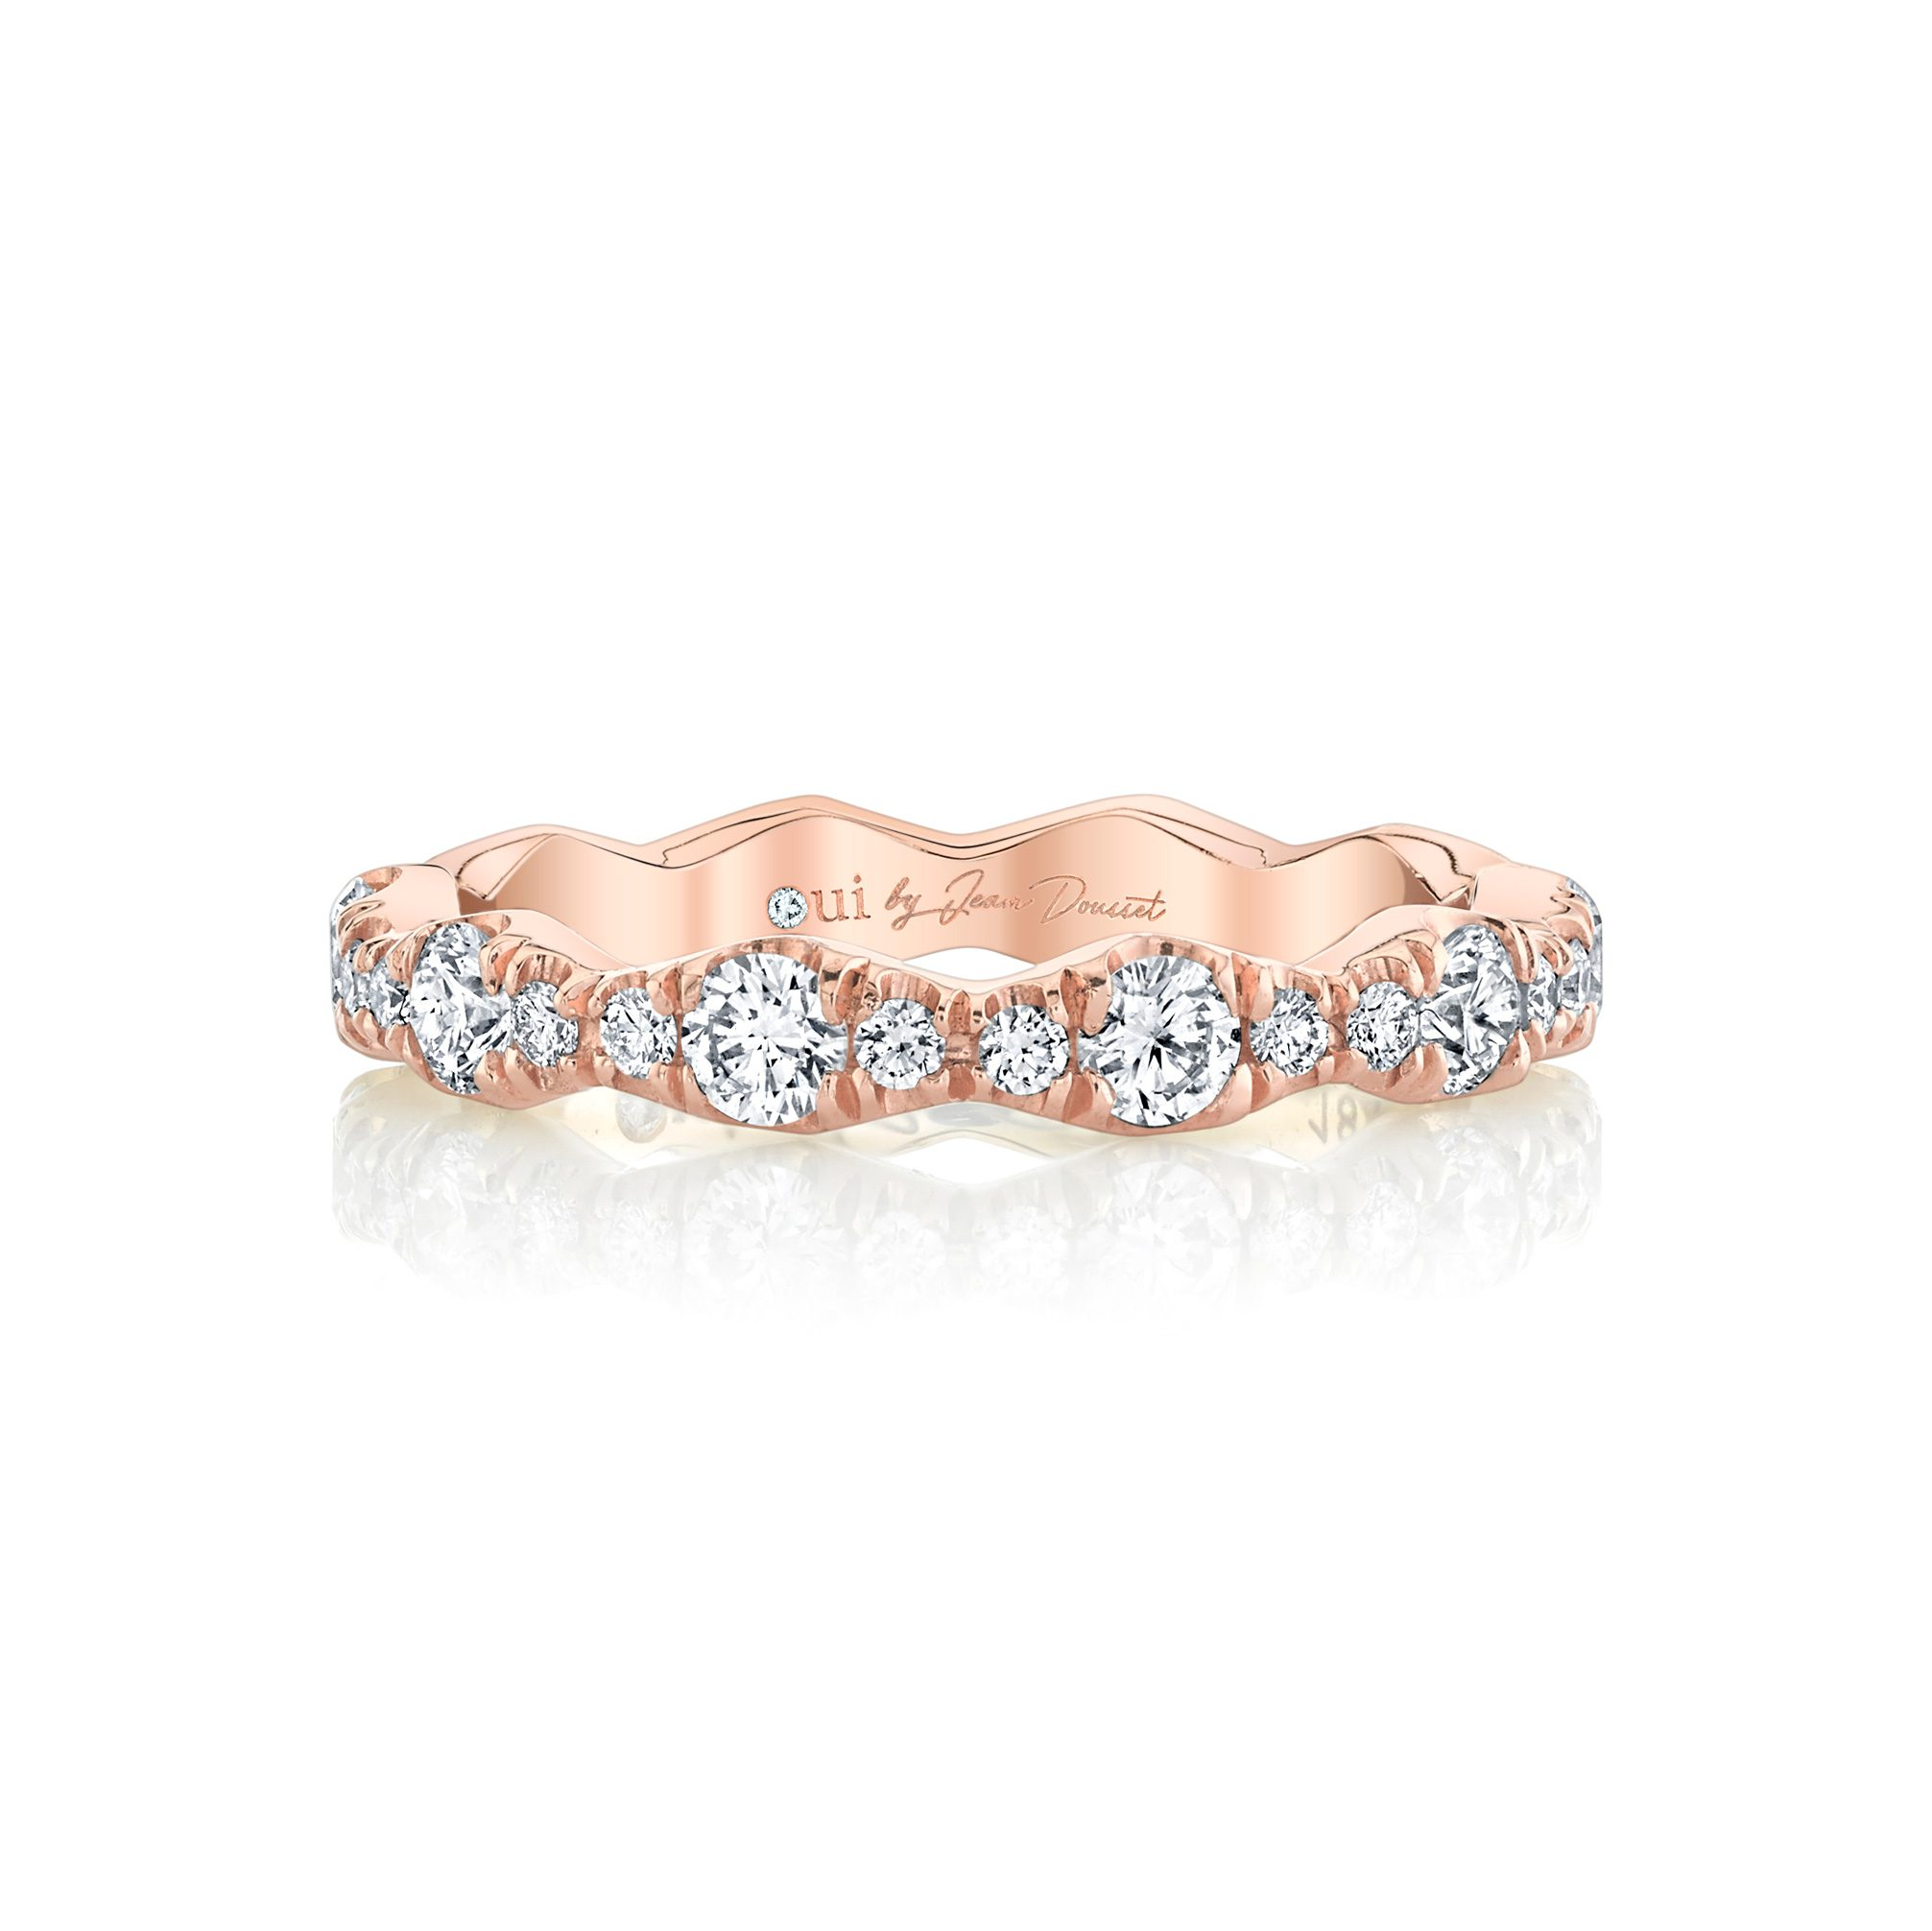 Yvonne Women's Wedding Band 18k Rose Gold Front View by Oui by Jean Dousset